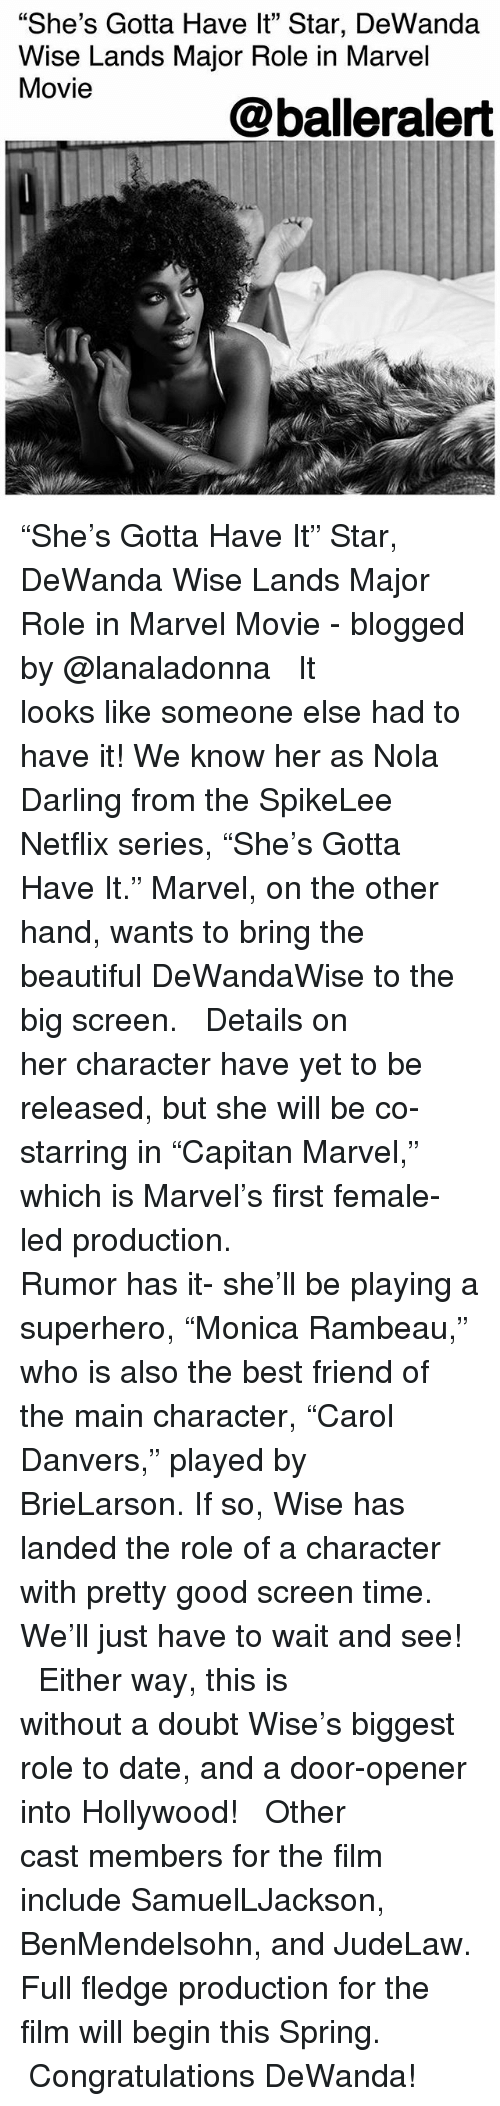 """Beautiful, Best Friend, and Memes: """"She's Gotta Have lt"""" Star, DeWanda  Wise Lands Major Role in Marvel  Movie  05  @balleralert """"She's Gotta Have It"""" Star, DeWanda Wise Lands Major Role in Marvel Movie - blogged by @lanaladonna ⠀⠀⠀⠀⠀⠀⠀ ⠀⠀⠀⠀⠀⠀⠀ It looks like someone else had to have it! We know her as Nola Darling from the SpikeLee Netflix series, """"She's Gotta Have It."""" Marvel, on the other hand, wants to bring the beautiful DeWandaWise to the big screen. ⠀⠀⠀⠀⠀⠀⠀ ⠀⠀⠀⠀⠀⠀⠀ Details on her character have yet to be released, but she will be co-starring in """"Capitan Marvel,"""" which is Marvel's first female-led production. ⠀⠀⠀⠀⠀⠀⠀ ⠀⠀⠀⠀⠀⠀⠀ Rumor has it- she'll be playing a superhero, """"Monica Rambeau,"""" who is also the best friend of the main character, """"Carol Danvers,"""" played by BrieLarson. If so, Wise has landed the role of a character with pretty good screen time. We'll just have to wait and see! ⠀⠀⠀⠀⠀⠀⠀ ⠀⠀⠀⠀⠀⠀⠀ Either way, this is without a doubt Wise's biggest role to date, and a door-opener into Hollywood! ⠀⠀⠀⠀⠀⠀⠀ ⠀⠀⠀⠀⠀⠀⠀ Other cast members for the film include SamuelLJackson, BenMendelsohn, and JudeLaw. Full fledge production for the film will begin this Spring. ⠀⠀⠀⠀⠀⠀⠀ ⠀⠀⠀⠀⠀⠀⠀ Congratulations DeWanda!"""